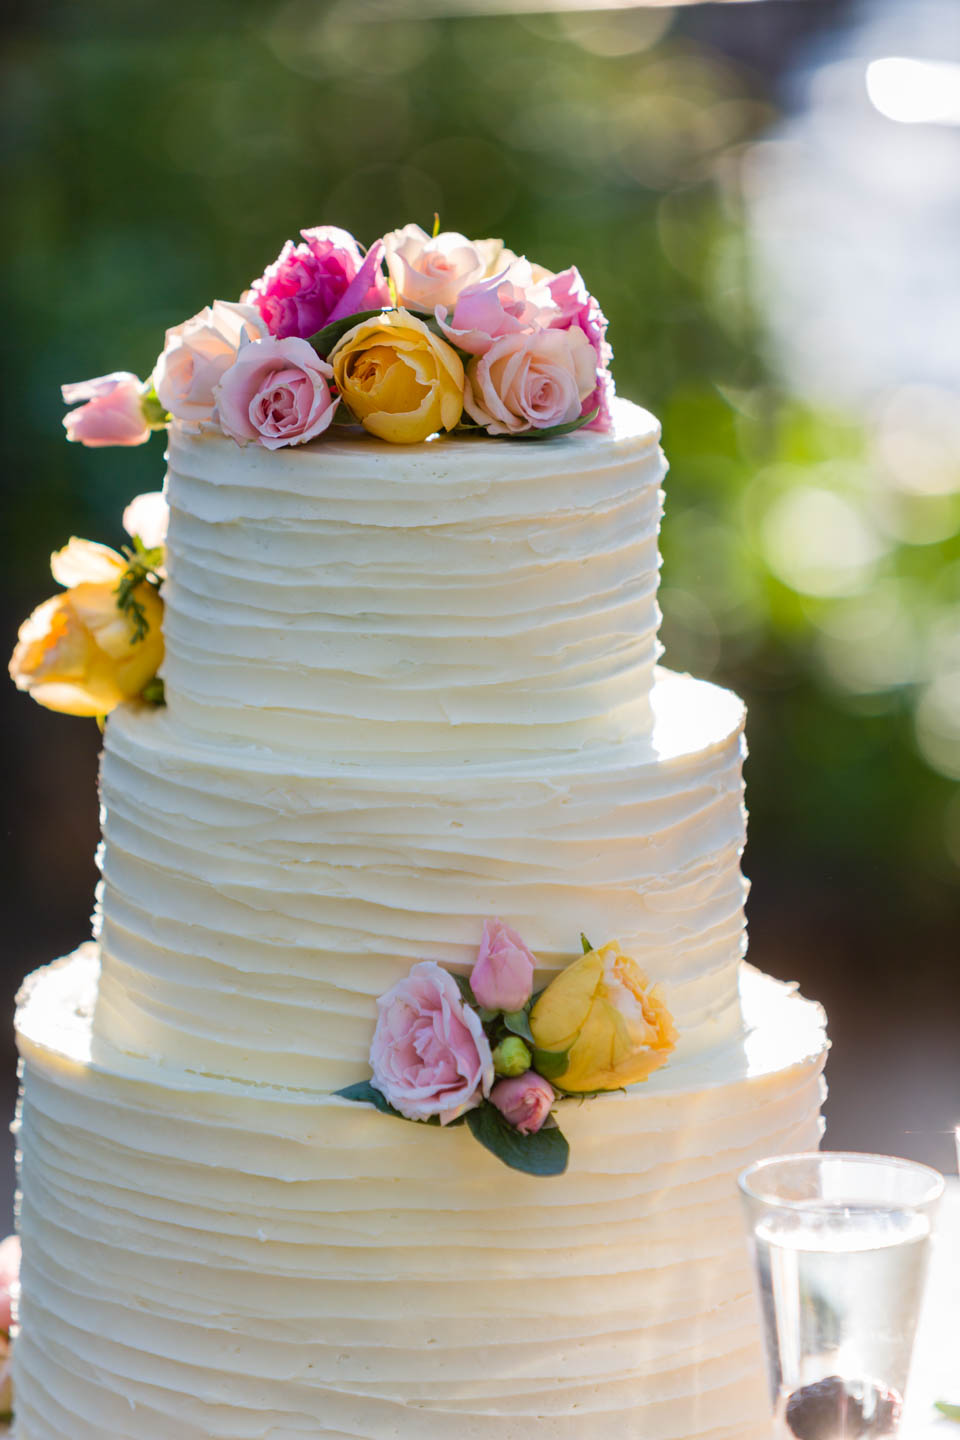 Wedding Cakes By Le Croissant Catering